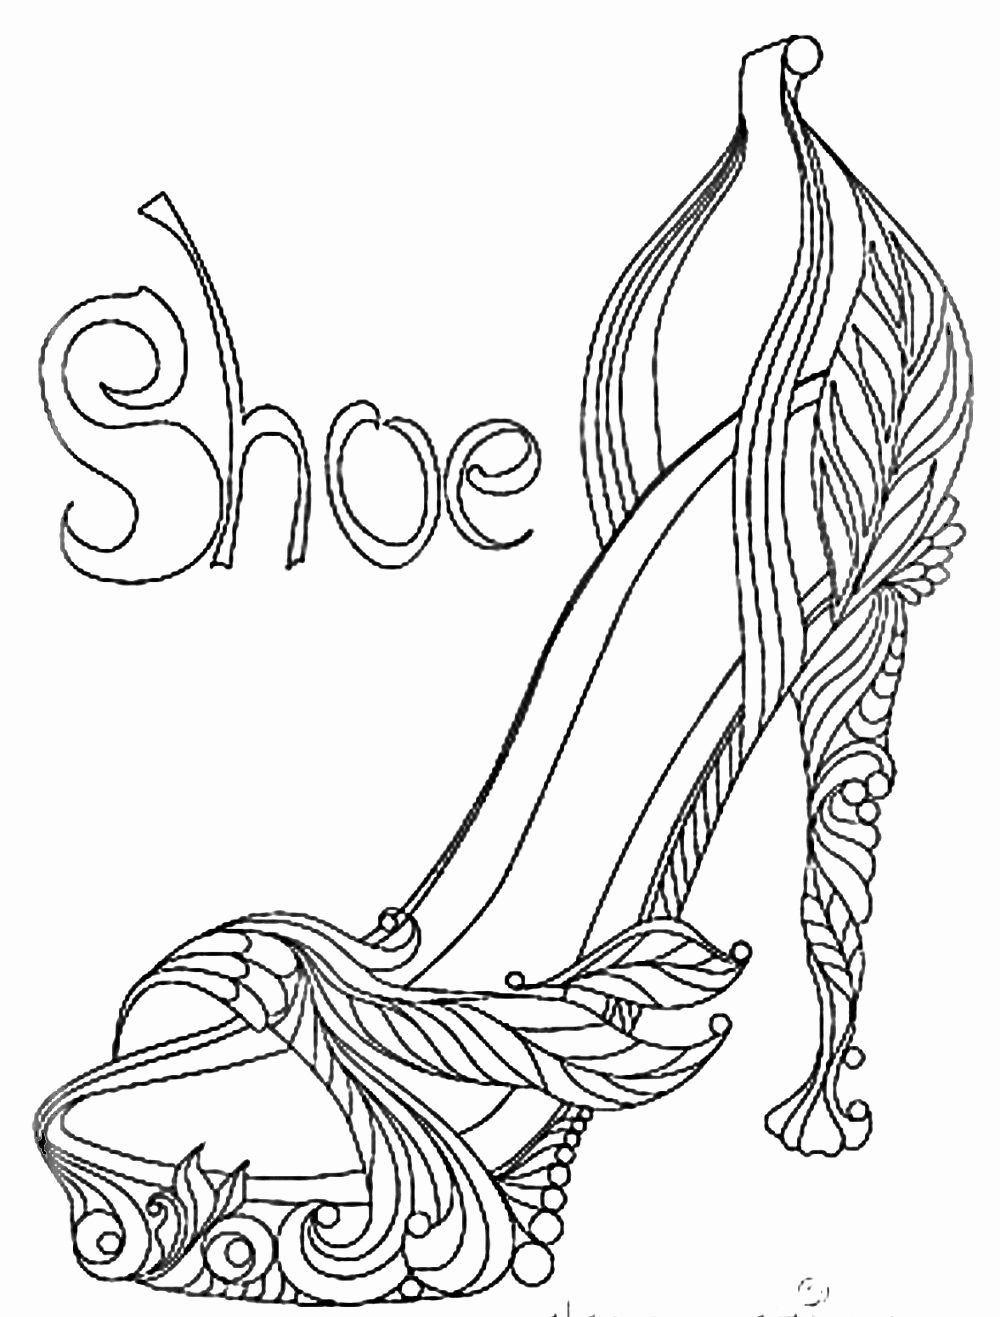 Jordan Shoe Coloring Book Awesome Coloring Pages Shoeg Sheets Nike Jordan For Kids Printable Designs Coloring Books Jordan Coloring Book Coloring Pages